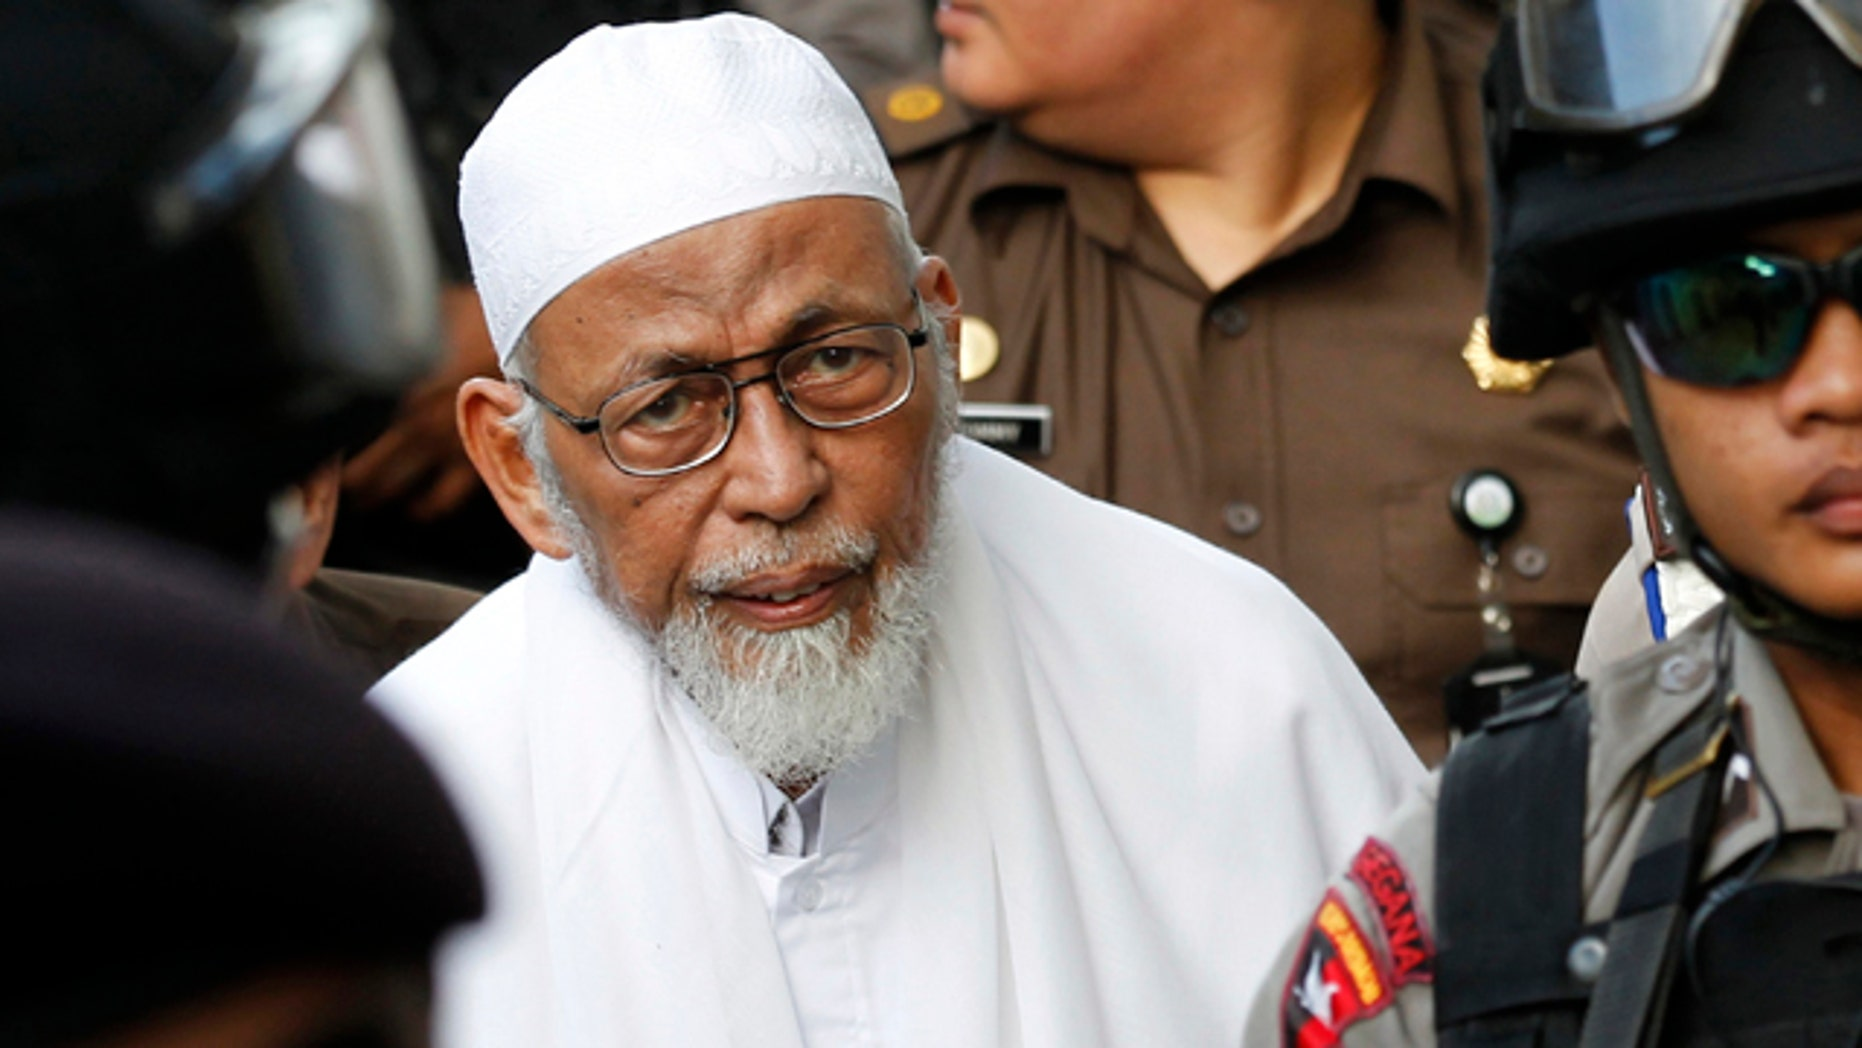 March 14, 2011: Radical Indonesian Muslim cleric Abu Bakar Bashir arrives at south Jakarta's court compound.